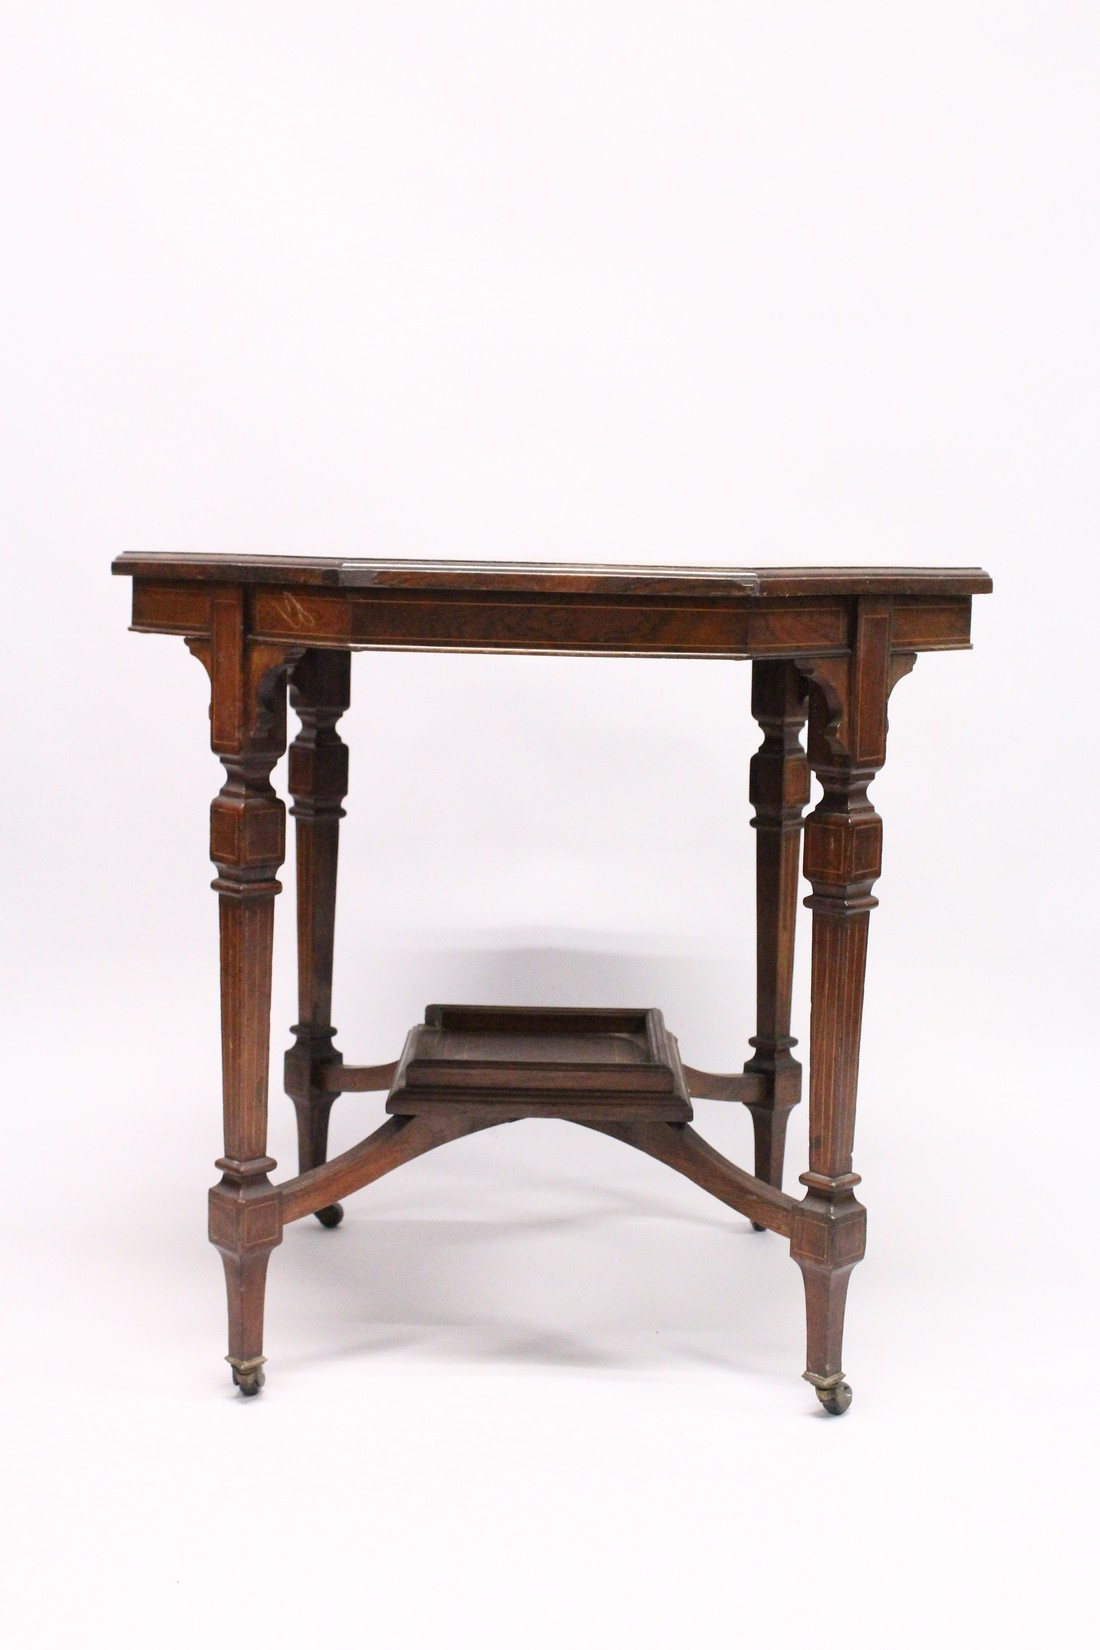 A GOOD VICTORIAN ROSEWOOD OCTAGONAL CENTRE TABLE with inlaid top, tapering legs with casters and - Image 2 of 5